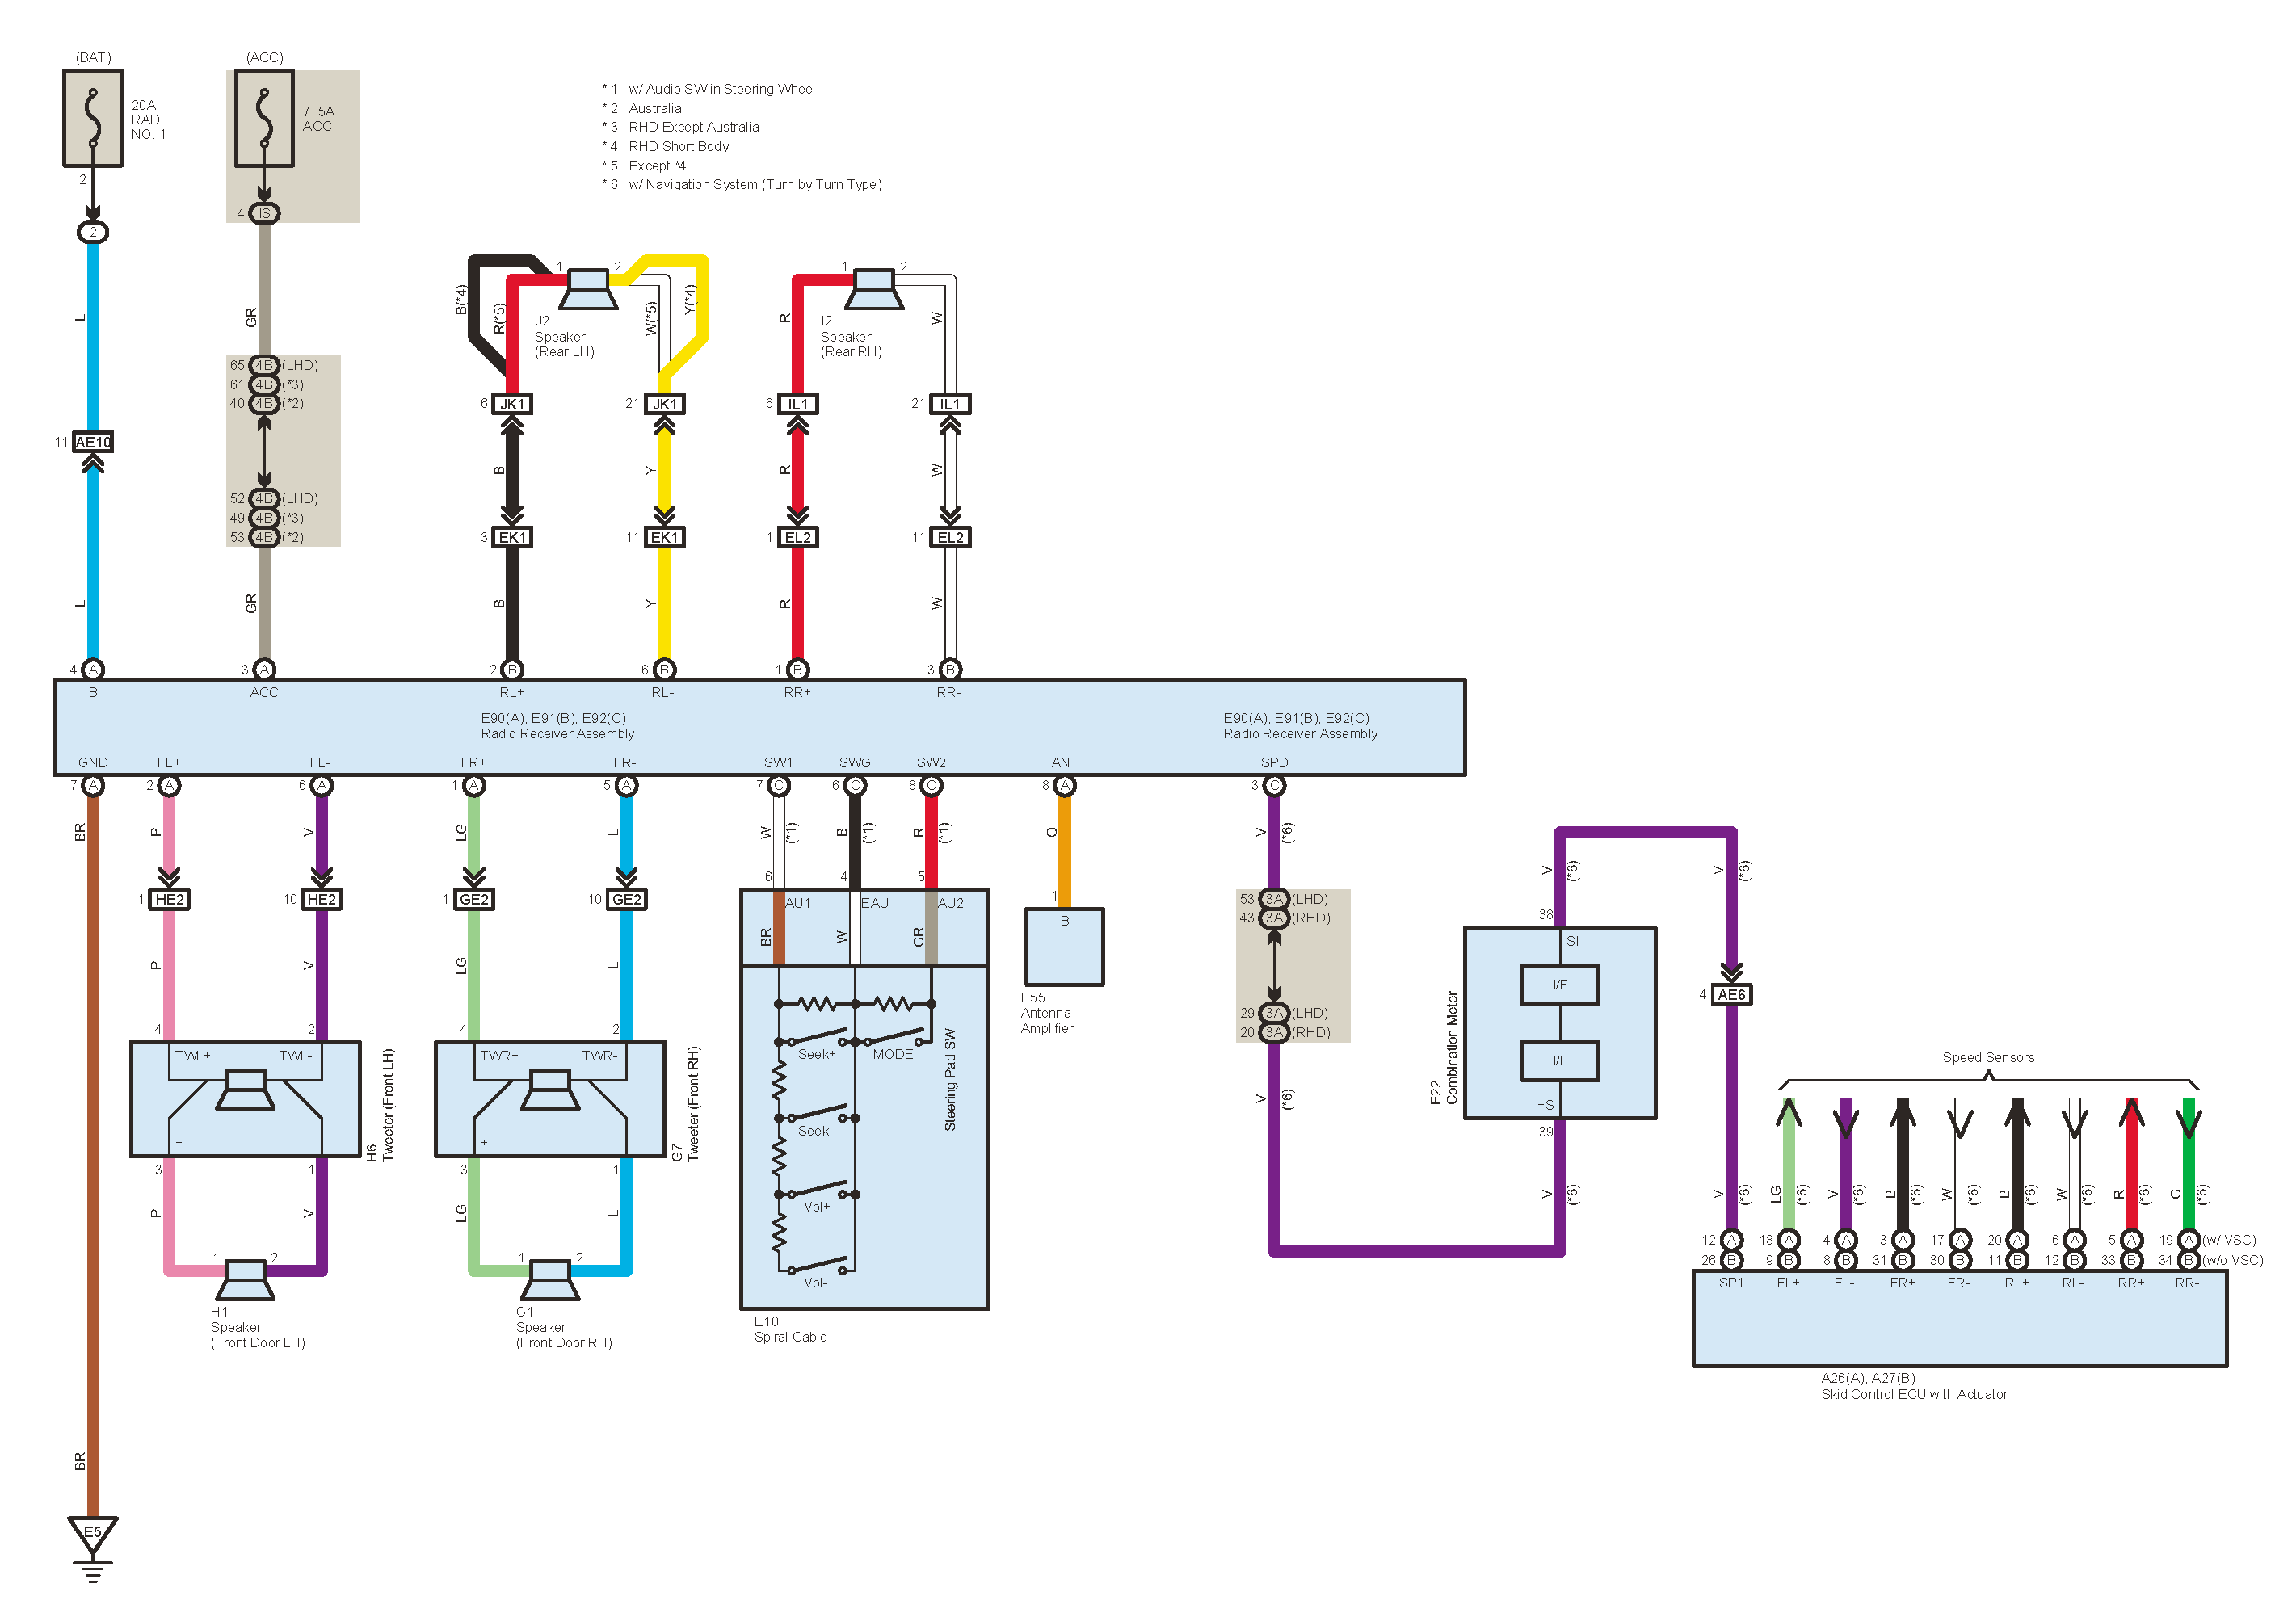 AS toyota rav4 wiring diagram porsche cayenne wiring diagram \u2022 wiring 08 Corolla at pacquiaovsvargaslive.co